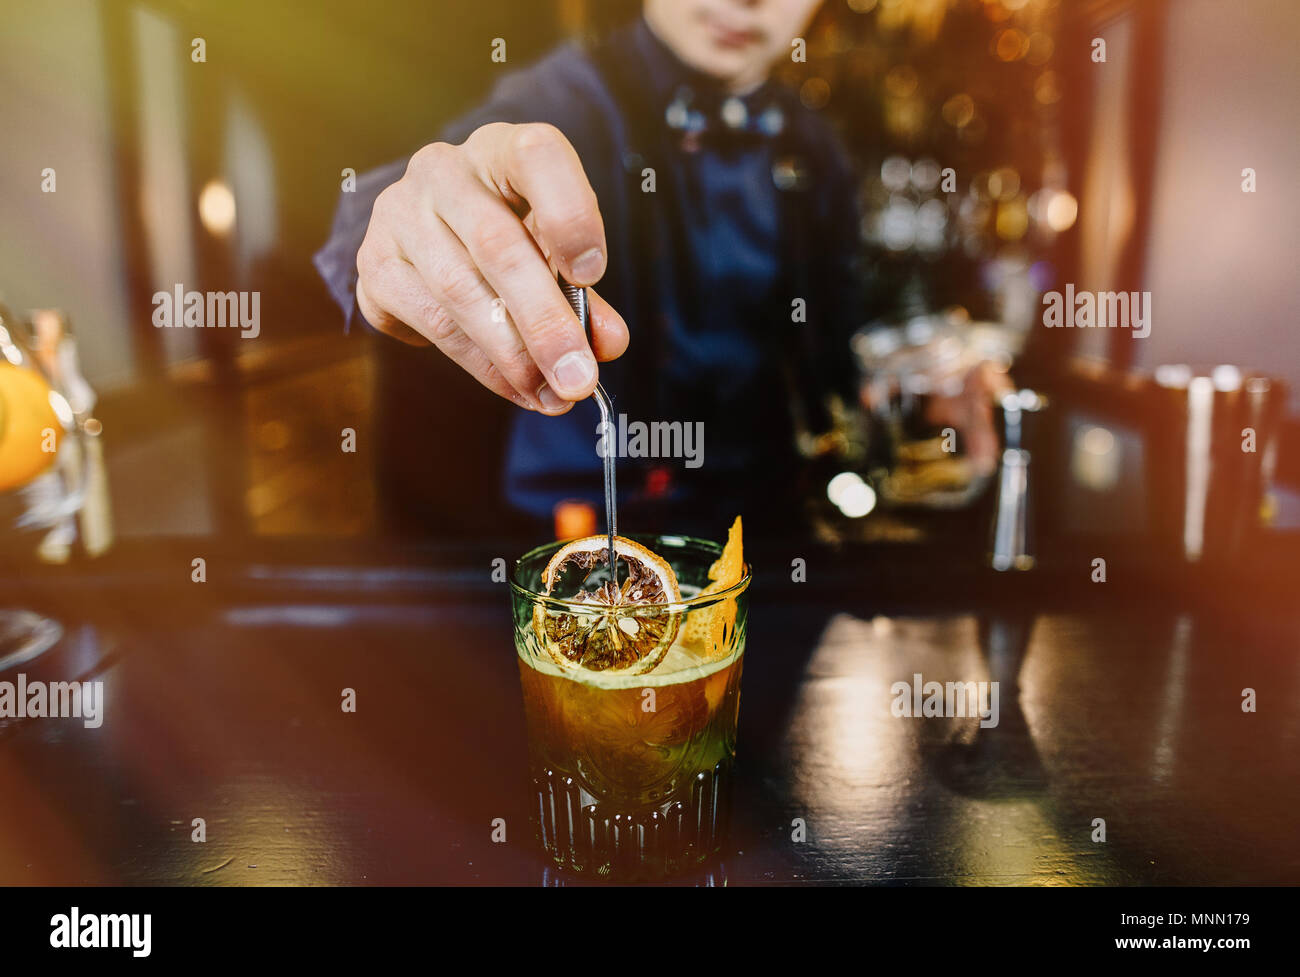 Experte Barkeeper macht Cocktail an der Bar. Stockbild